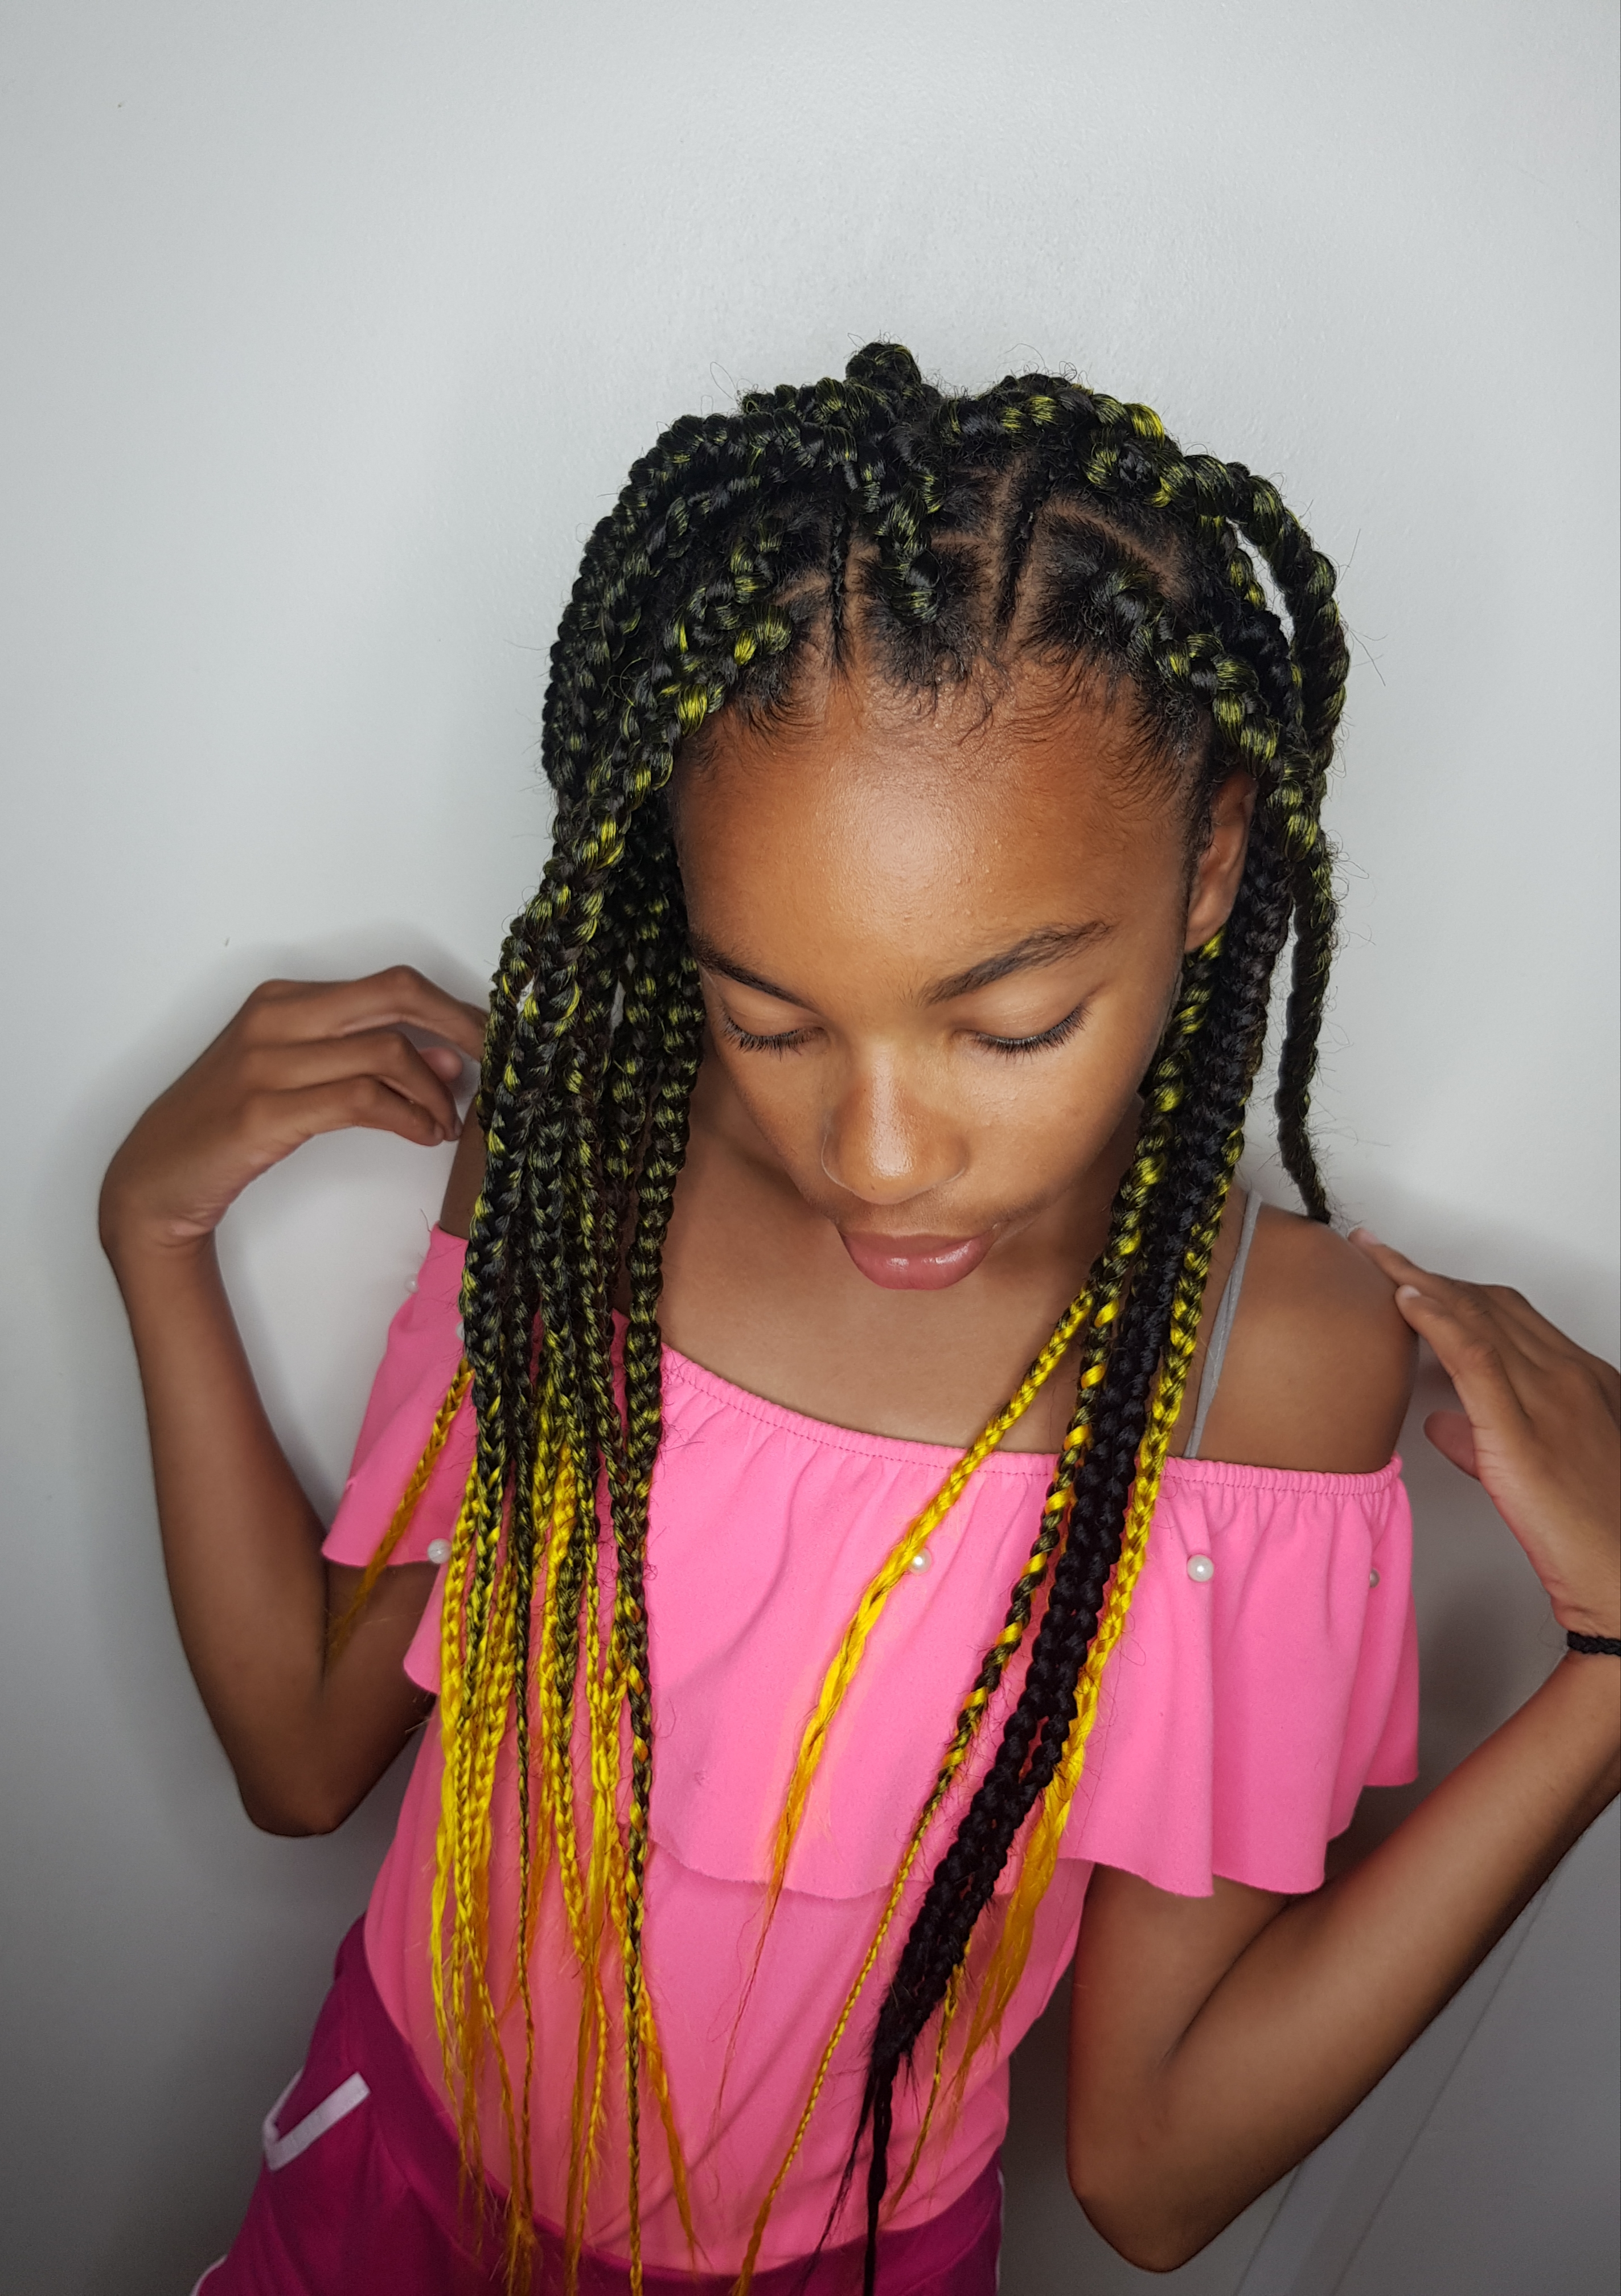 salon de coiffure afro tresse tresses box braids crochet braids vanilles tissages paris 75 77 78 91 92 93 94 95 YBNVNNBS